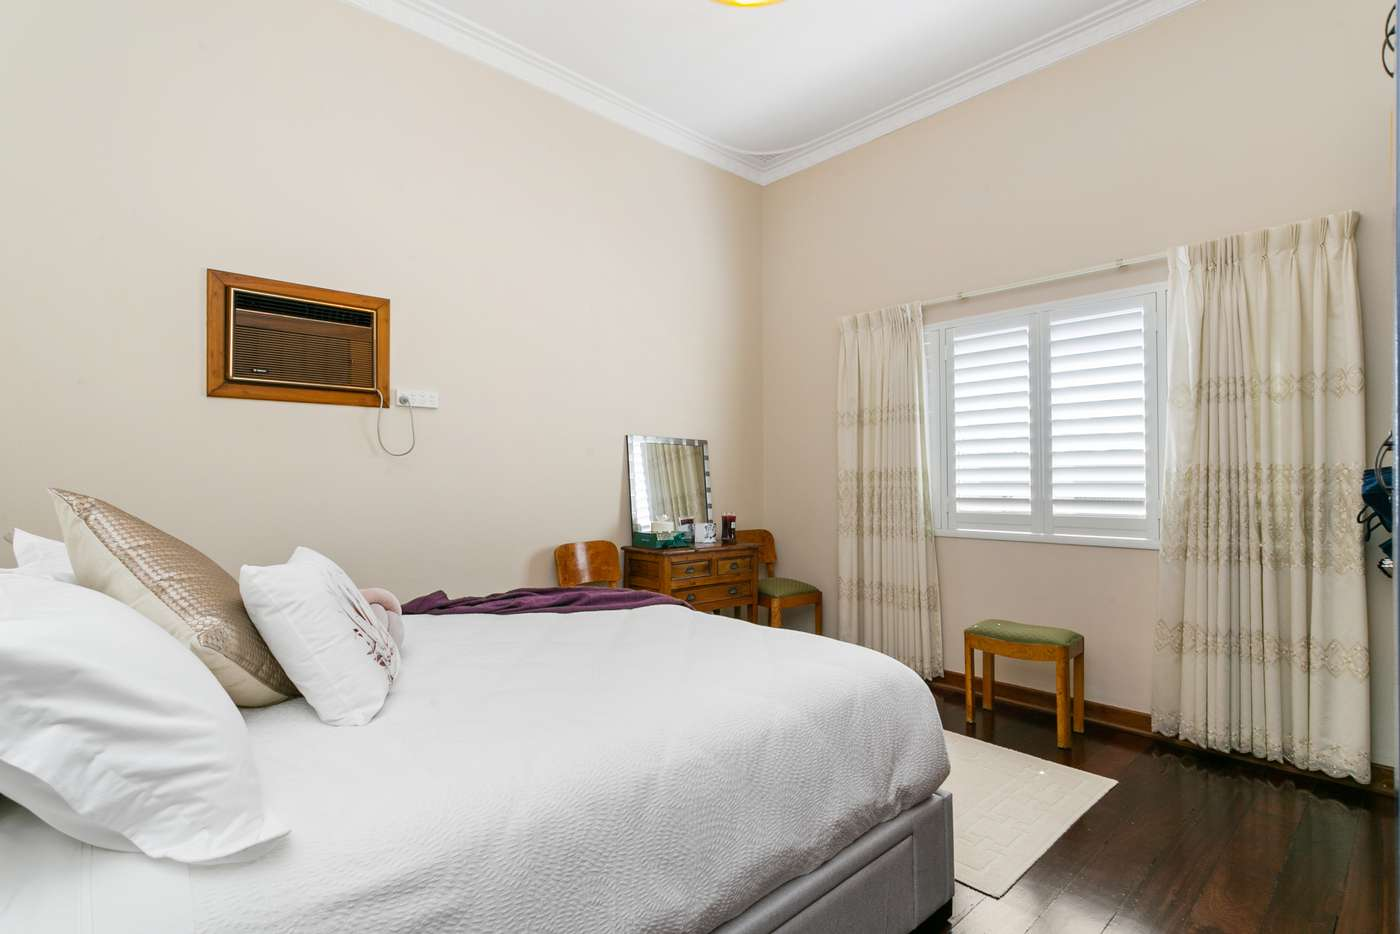 Seventh view of Homely house listing, 33 Ruby Street, North Perth WA 6006